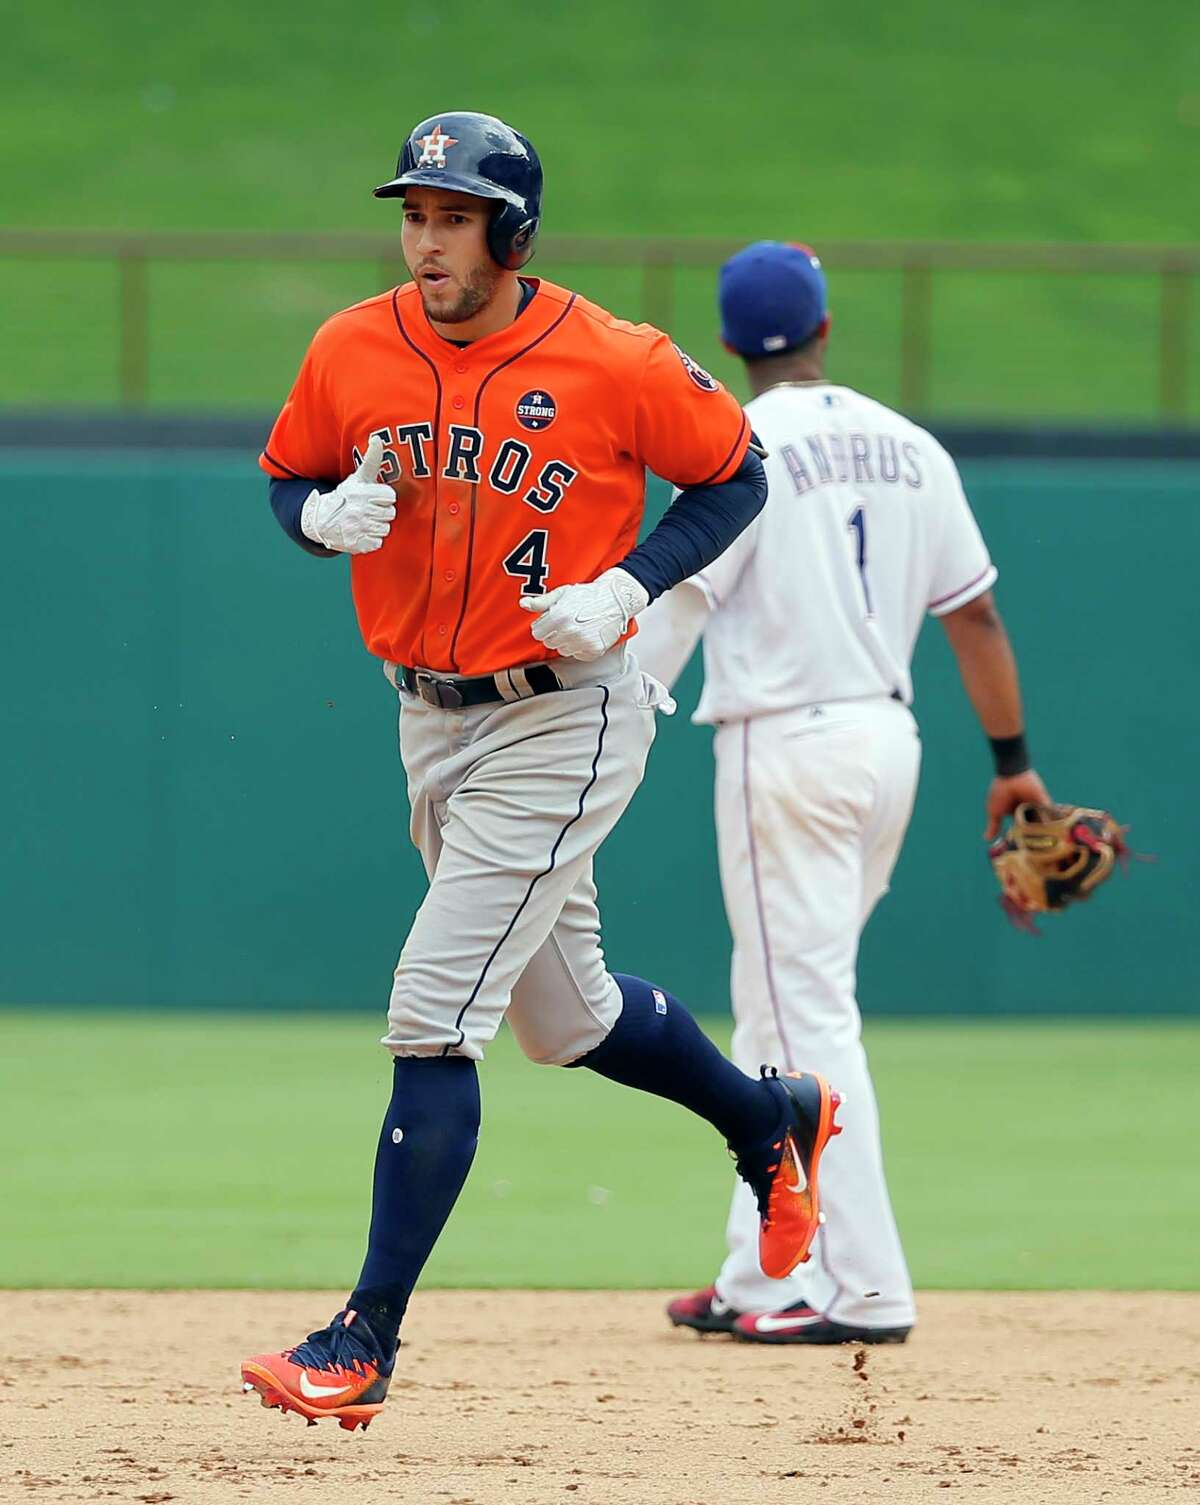 Houston Astros' George Springer (4) rounds the bases past Texas Rangers shortstop Elvis Andrus after hitting a grand slam off Rangers relief pitcher Tony Barnette in the sixth inning of a baseball game, Wednesday, Sept. 27, 2017, in Arlington, Texas. (AP Photo/Tony Gutierrez)